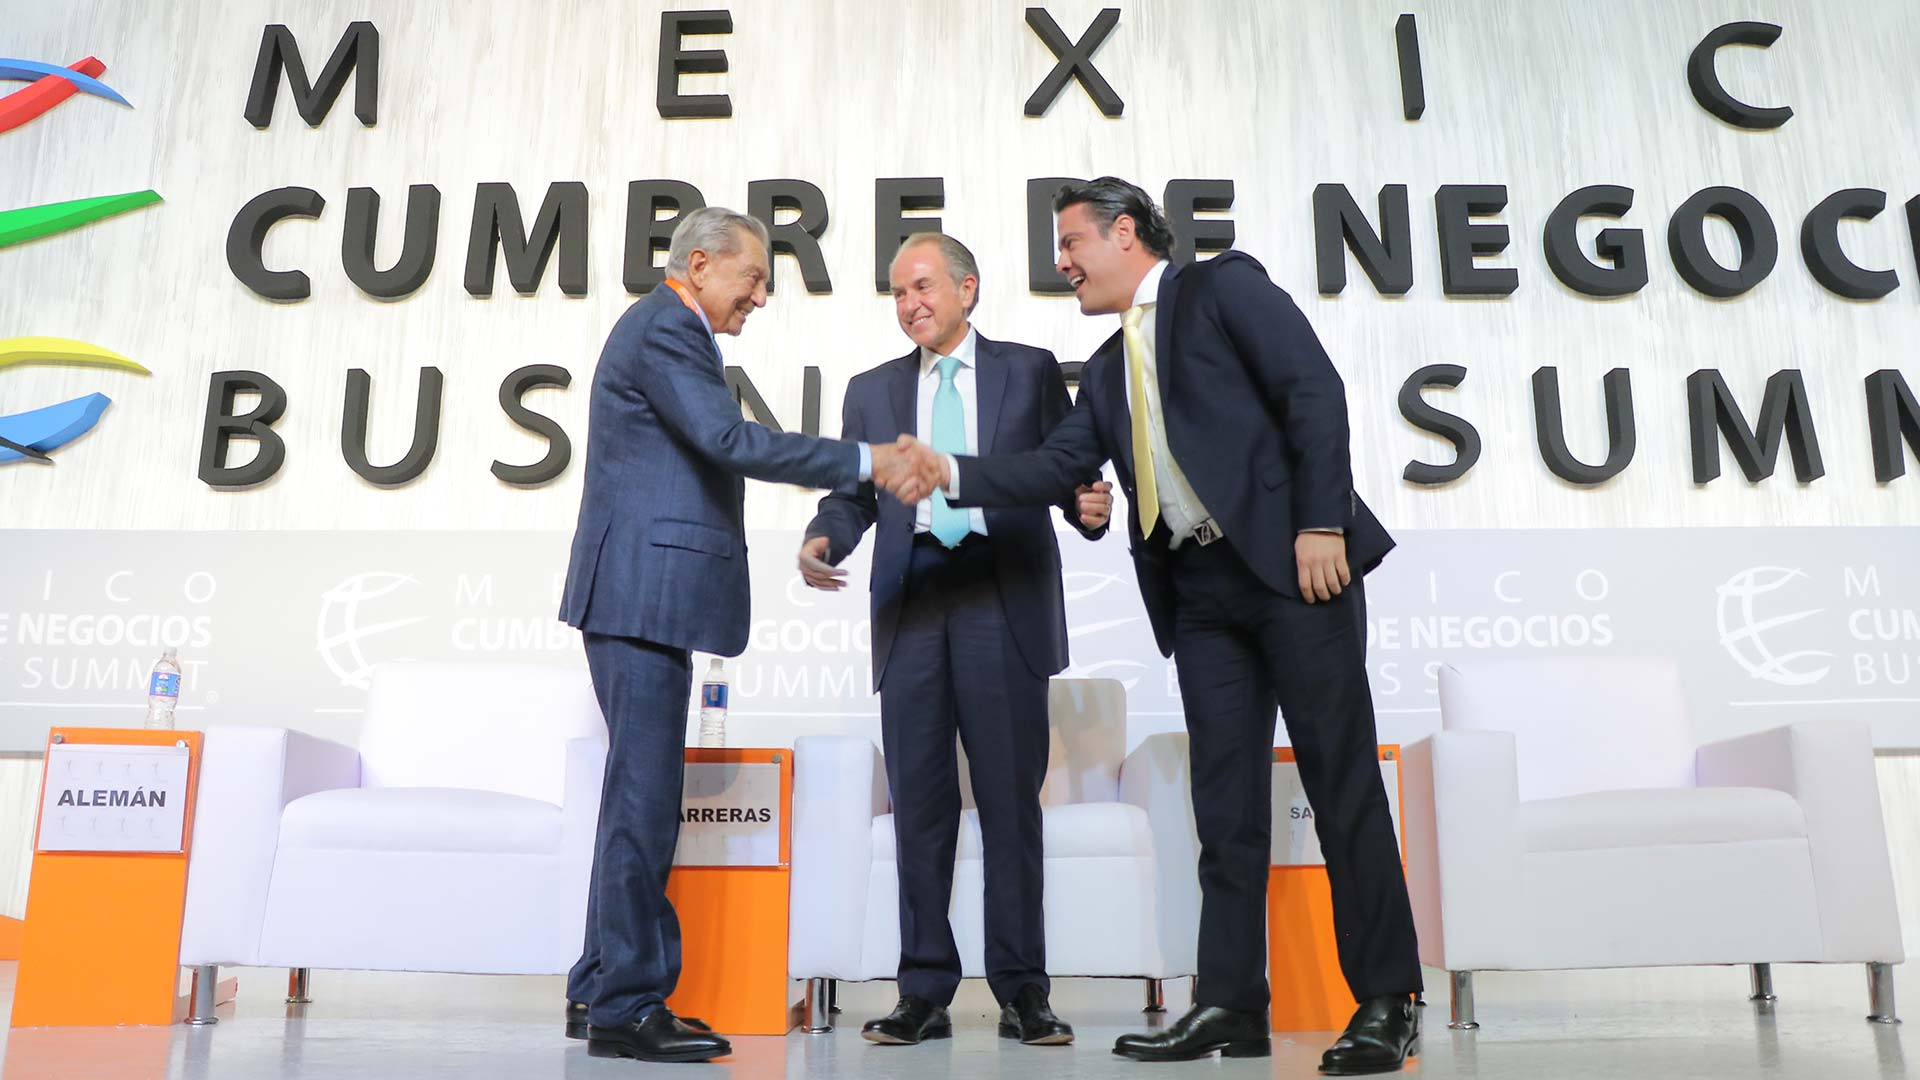 The annual Cumbre de Negocios business summit will be held in Guadalajara, Mexico, Oct. 21-23.